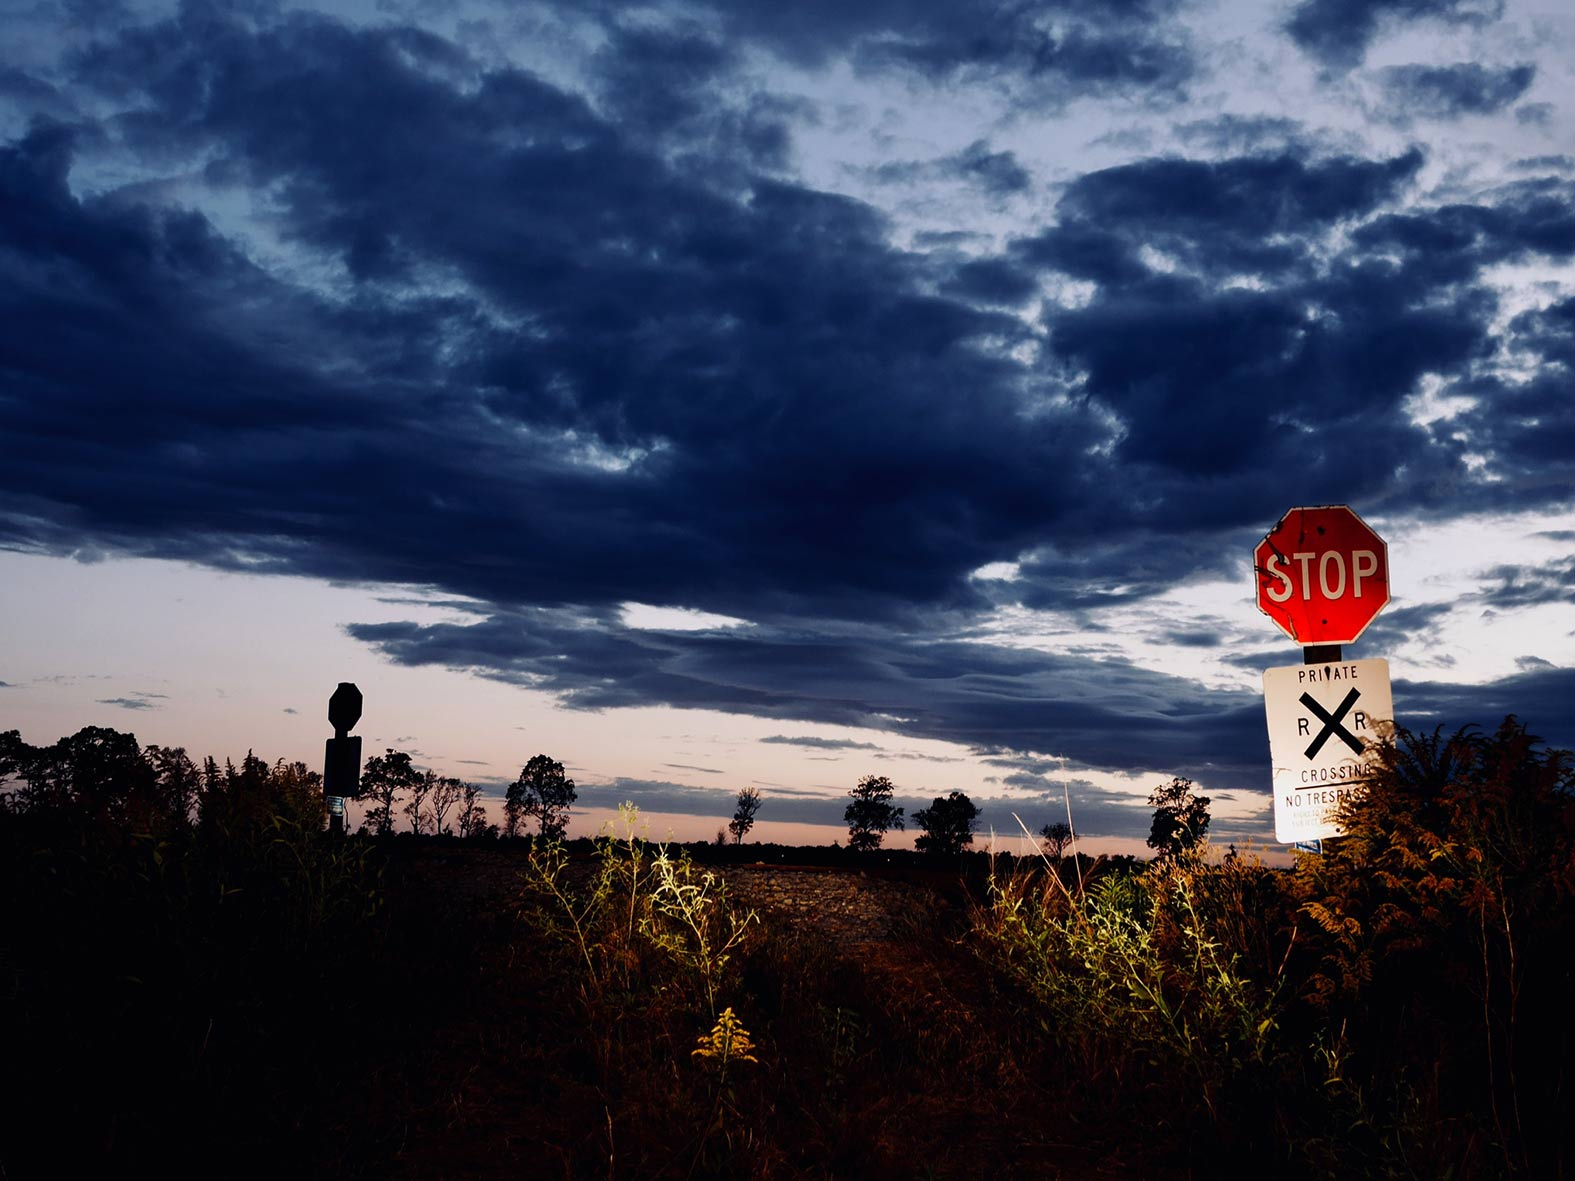 ® Steven Paters - stop at night 460